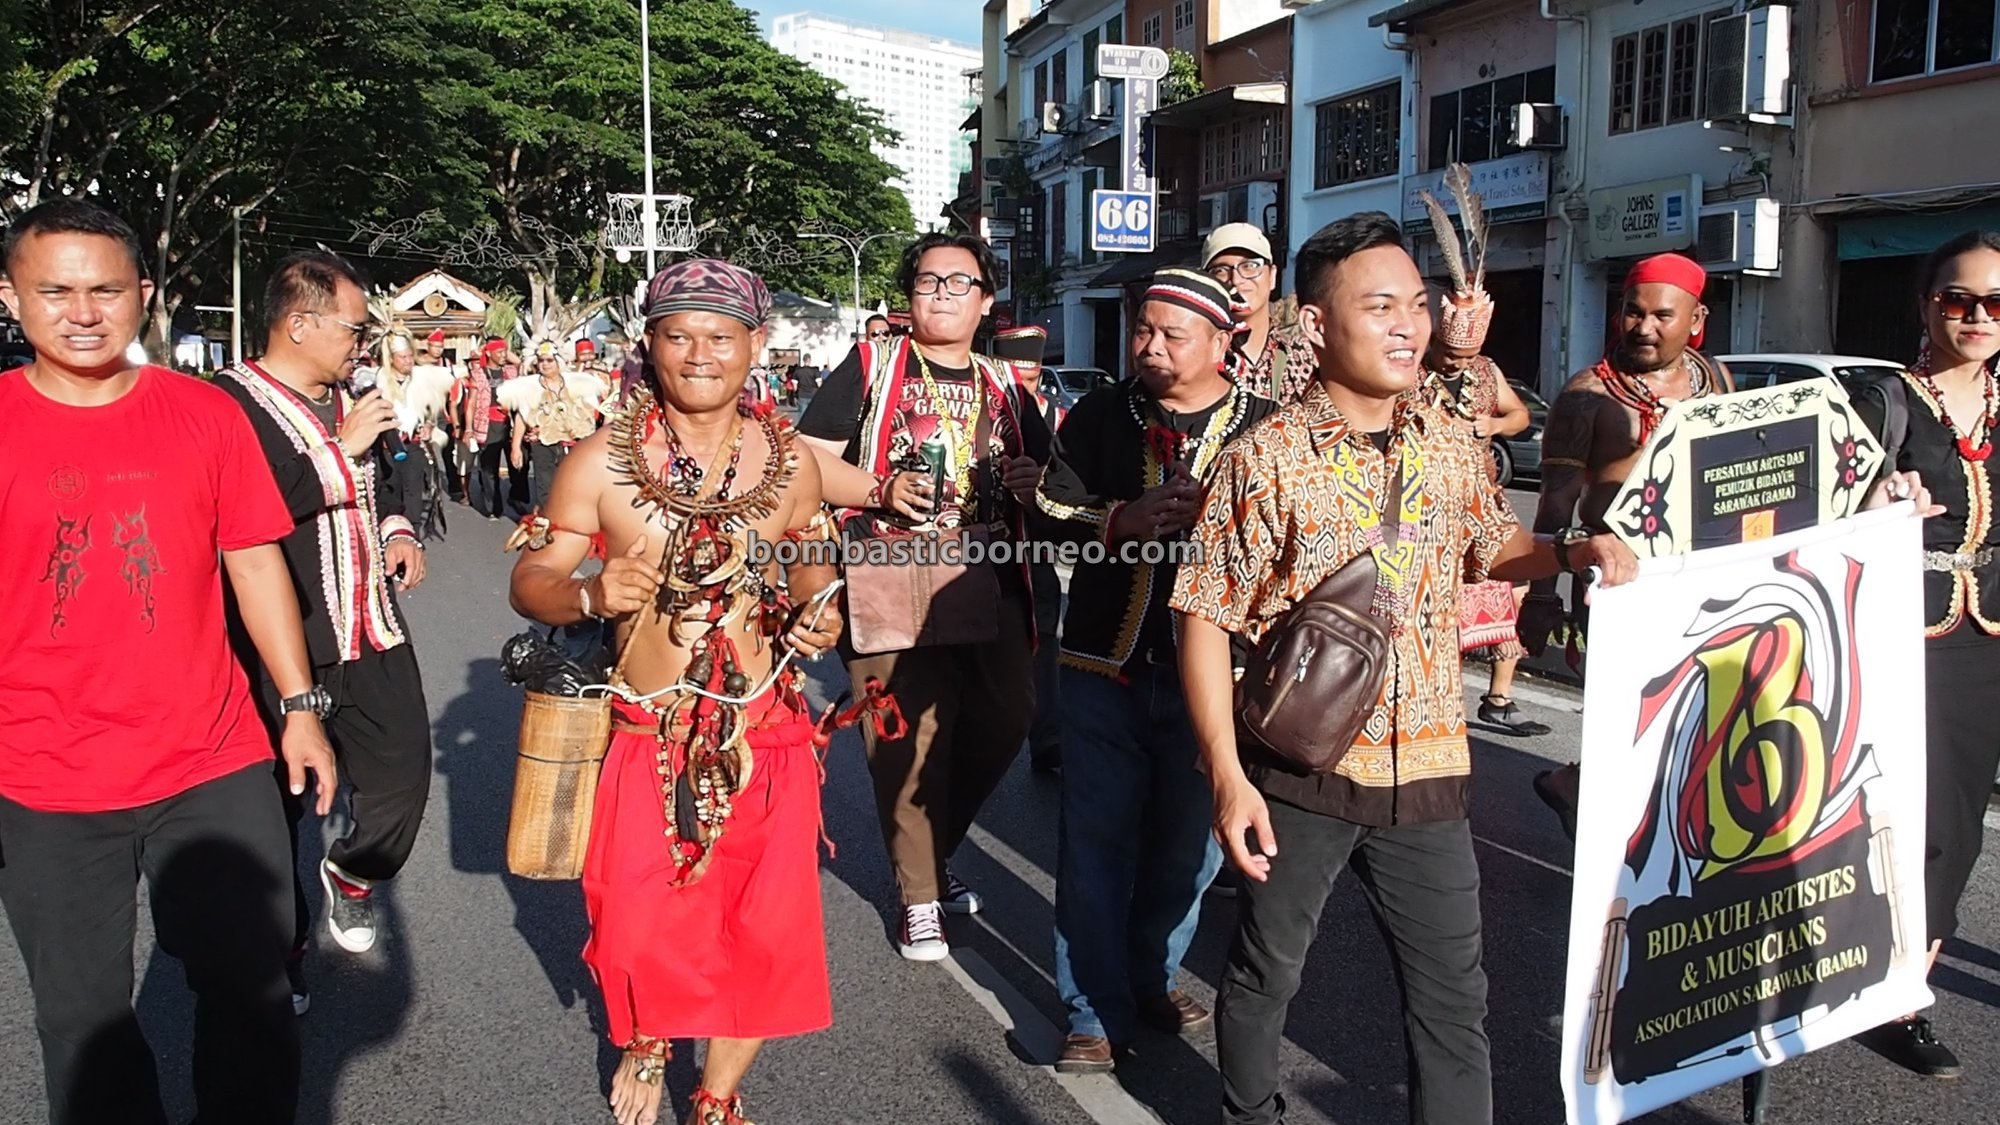 Gawai Dayak, Street Parade, budaya, backpackers, destination, Malaysia, Ethnic, native, tribe, tourism, tourist attraction, Travel guide, 砂拉越比达友族, 马来西亚土著部落, 古晋河滨公园,